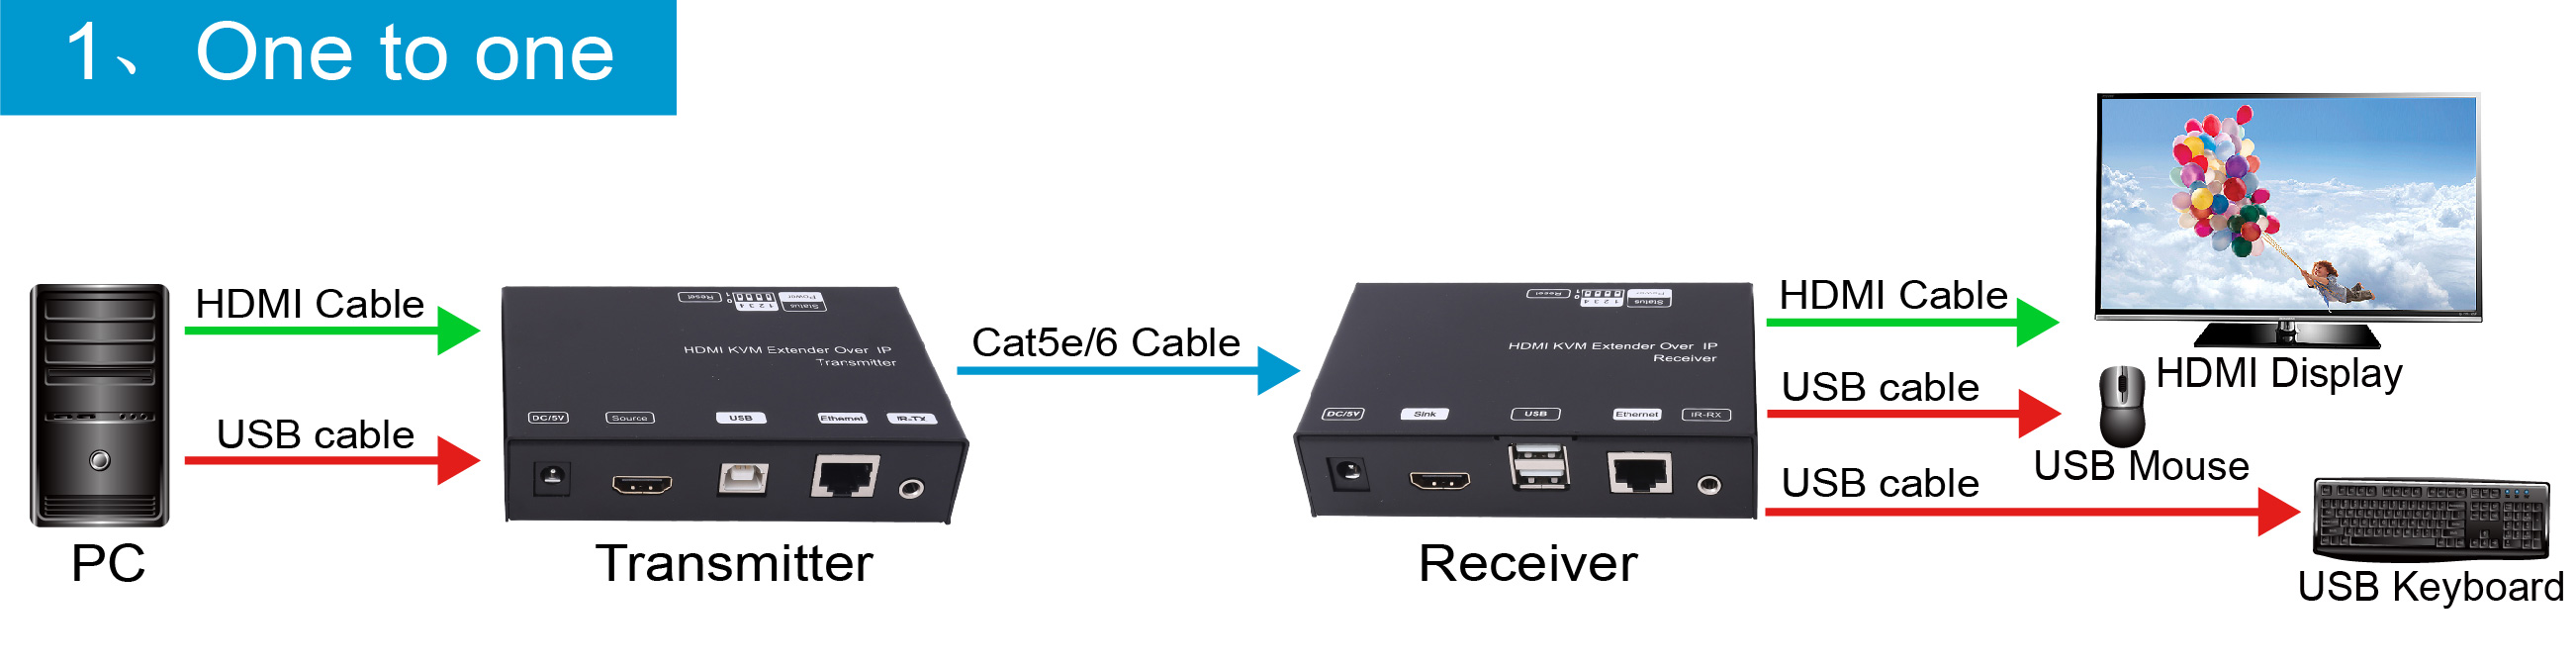 Hdmikvm Hdmi Usb Kvm Extender Over Ip Pro2 Cable Wiring Diagram